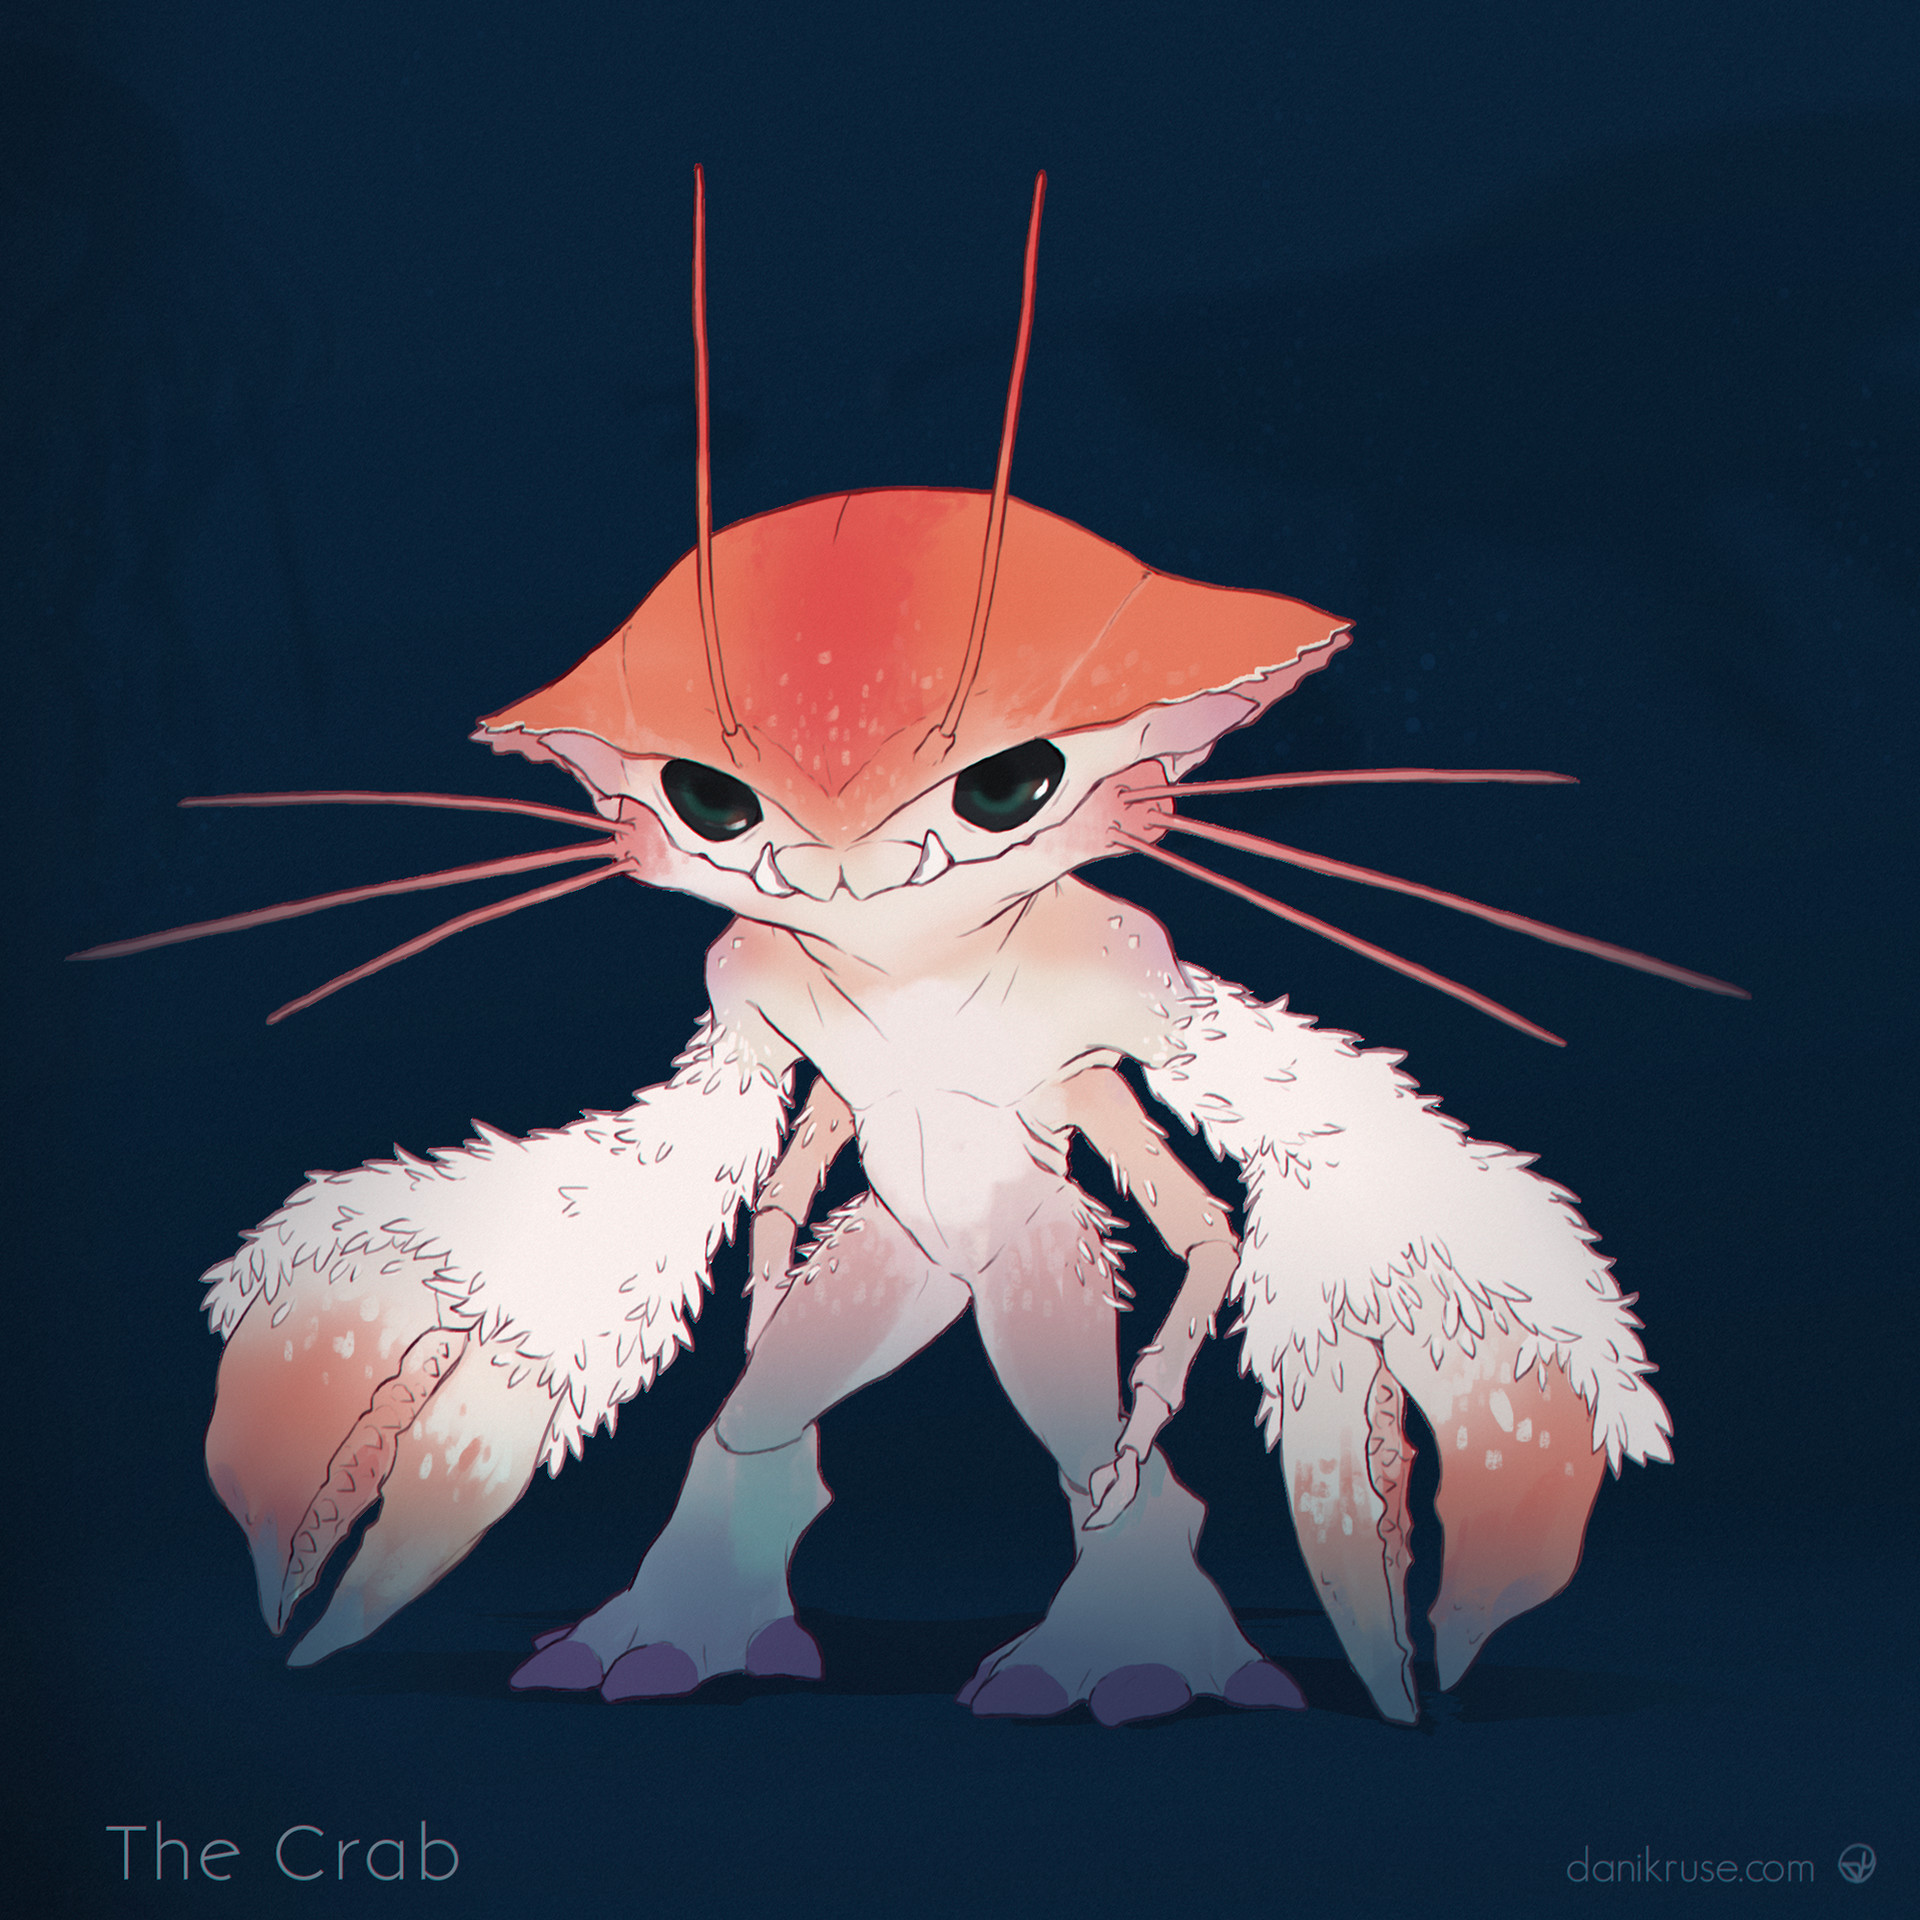 Dani kruse btw the crab